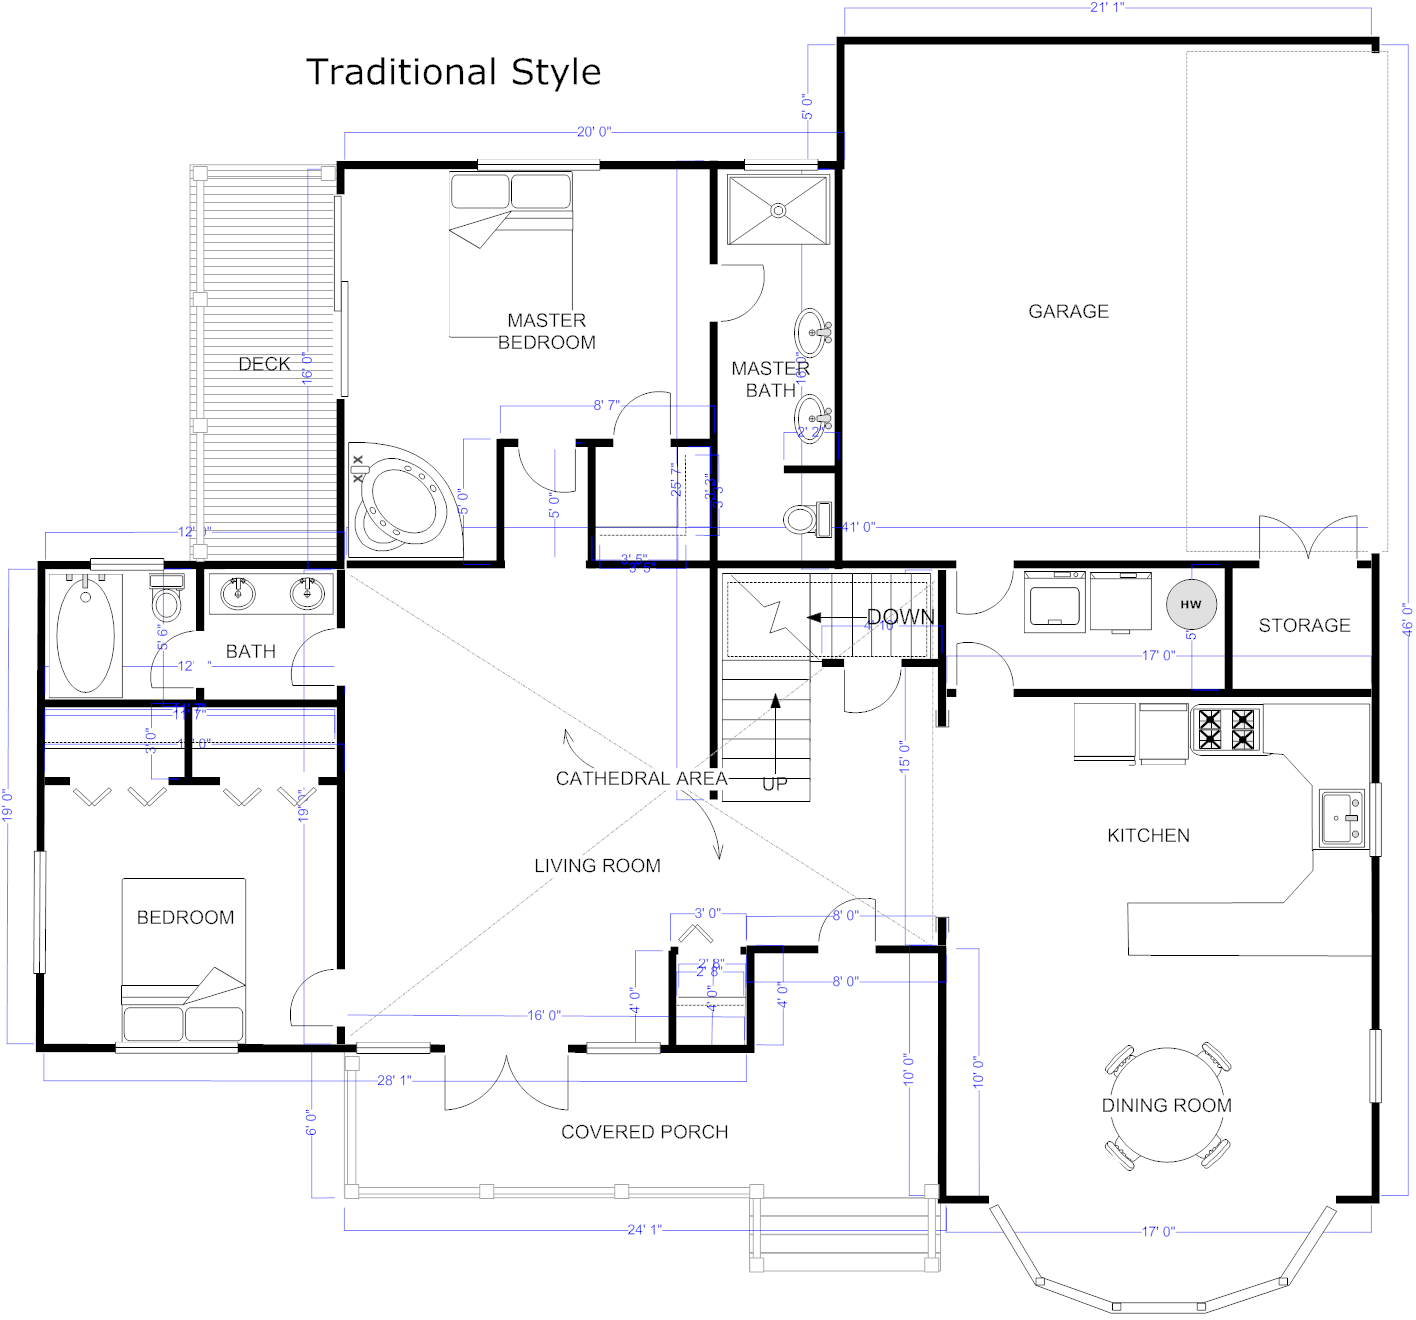 House Design Software Download Free To Design Home Plans Architectural House Plans Home Design Software House Architecture Design